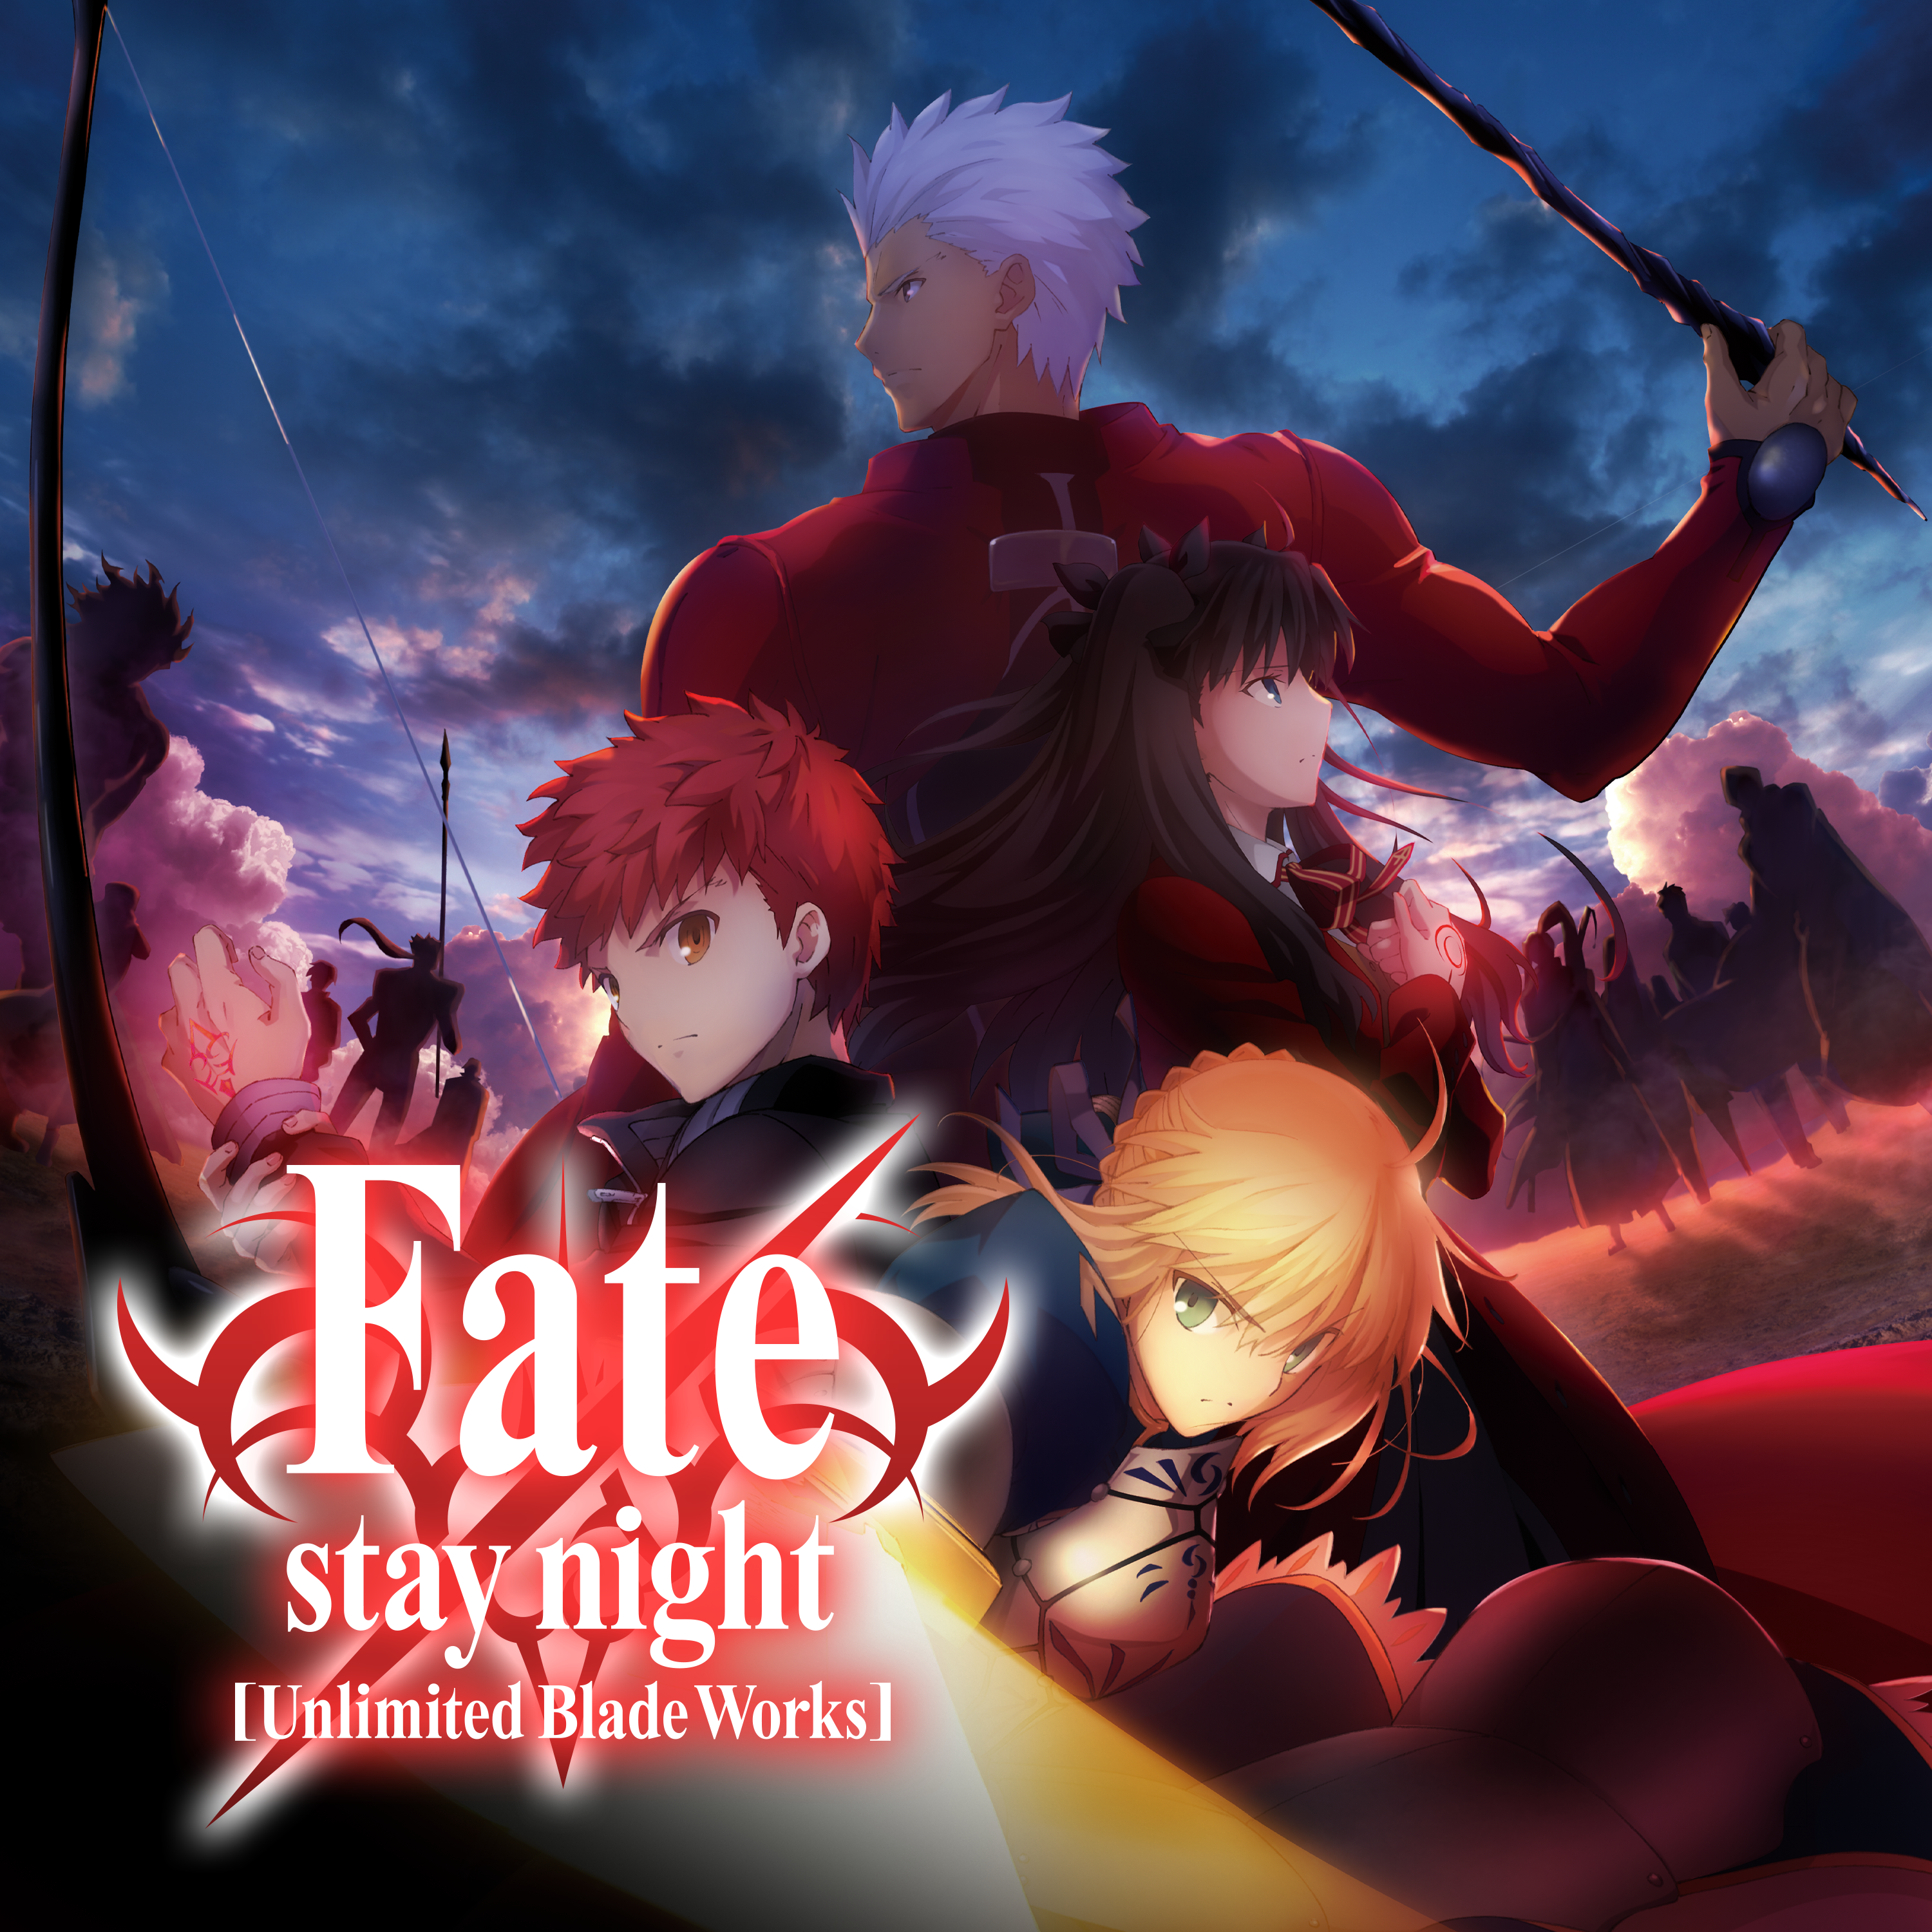 fate stay night unlimited blade works watch online free